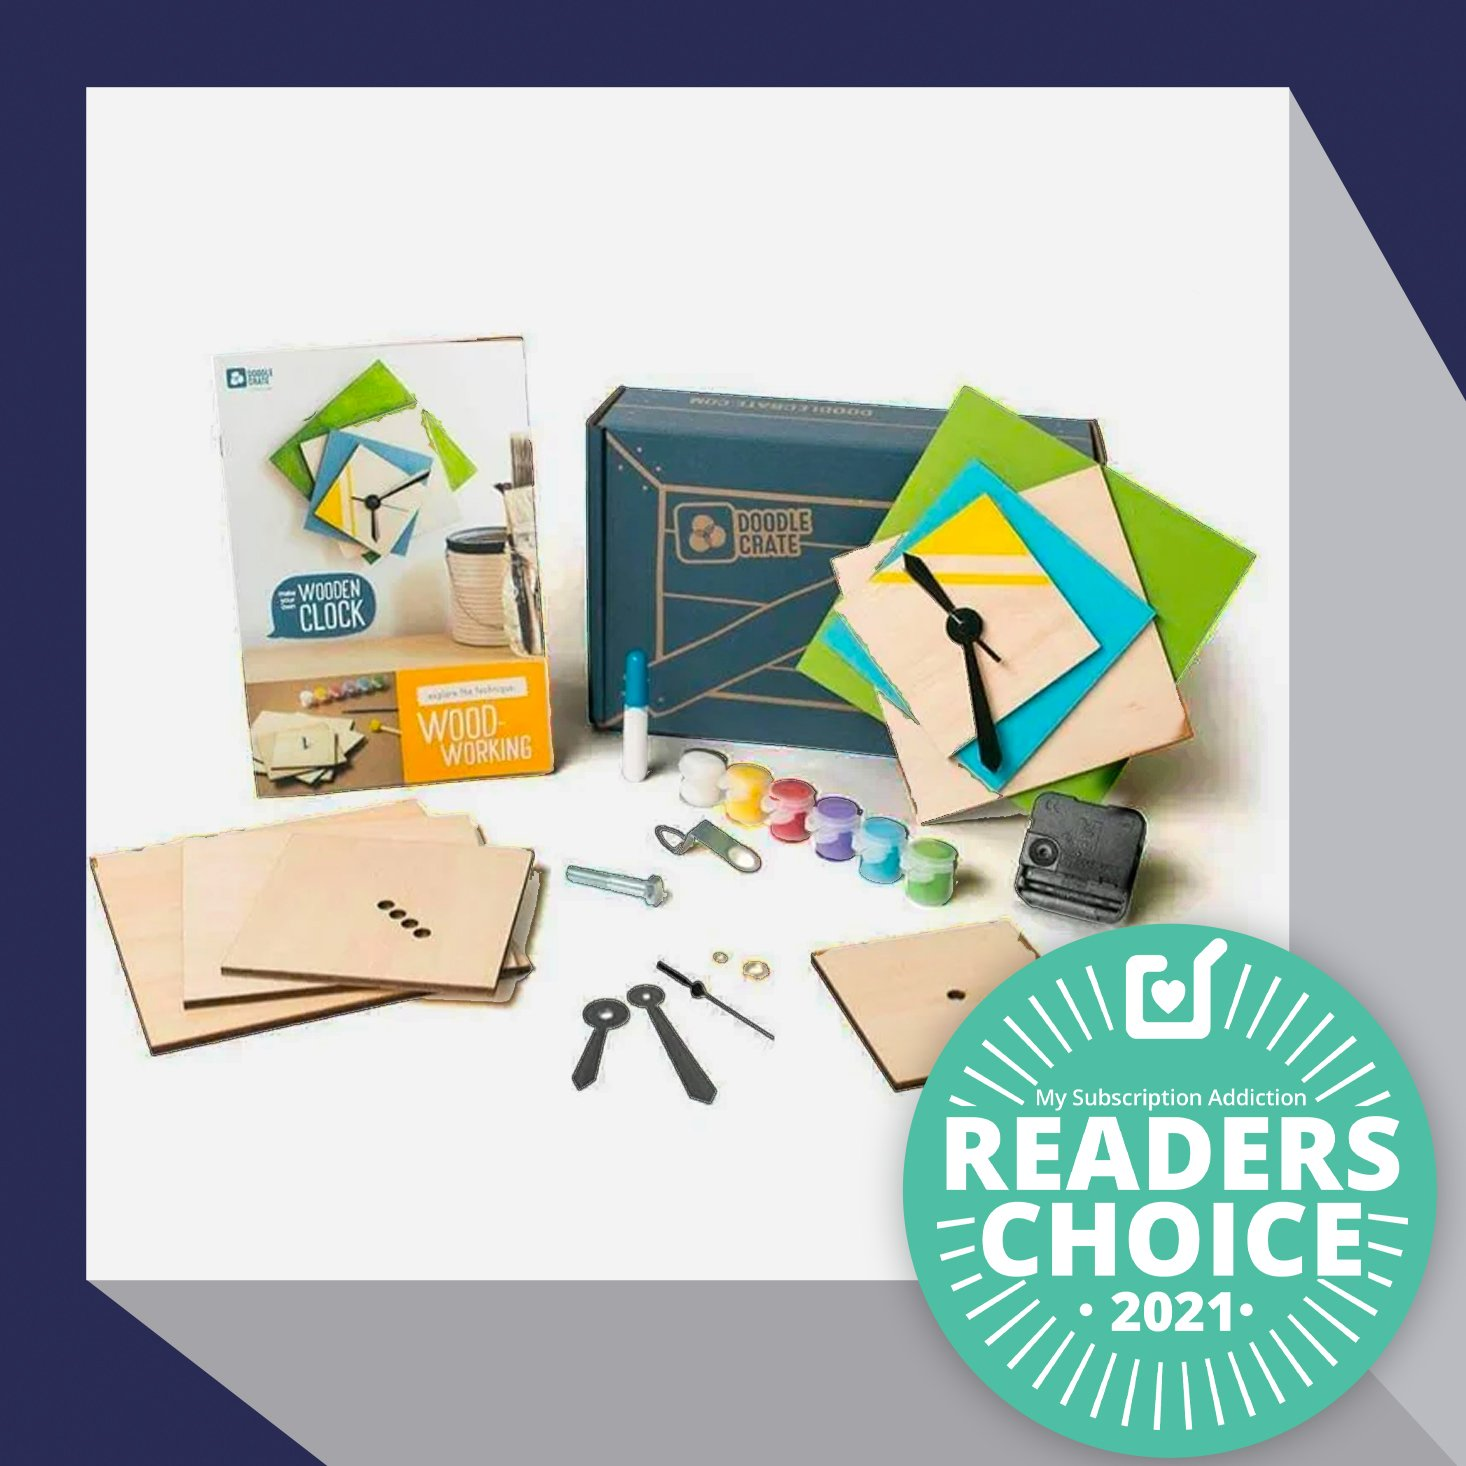 The 15 Best Art and Craft Subscription Boxes – 2021 Reader's Choice